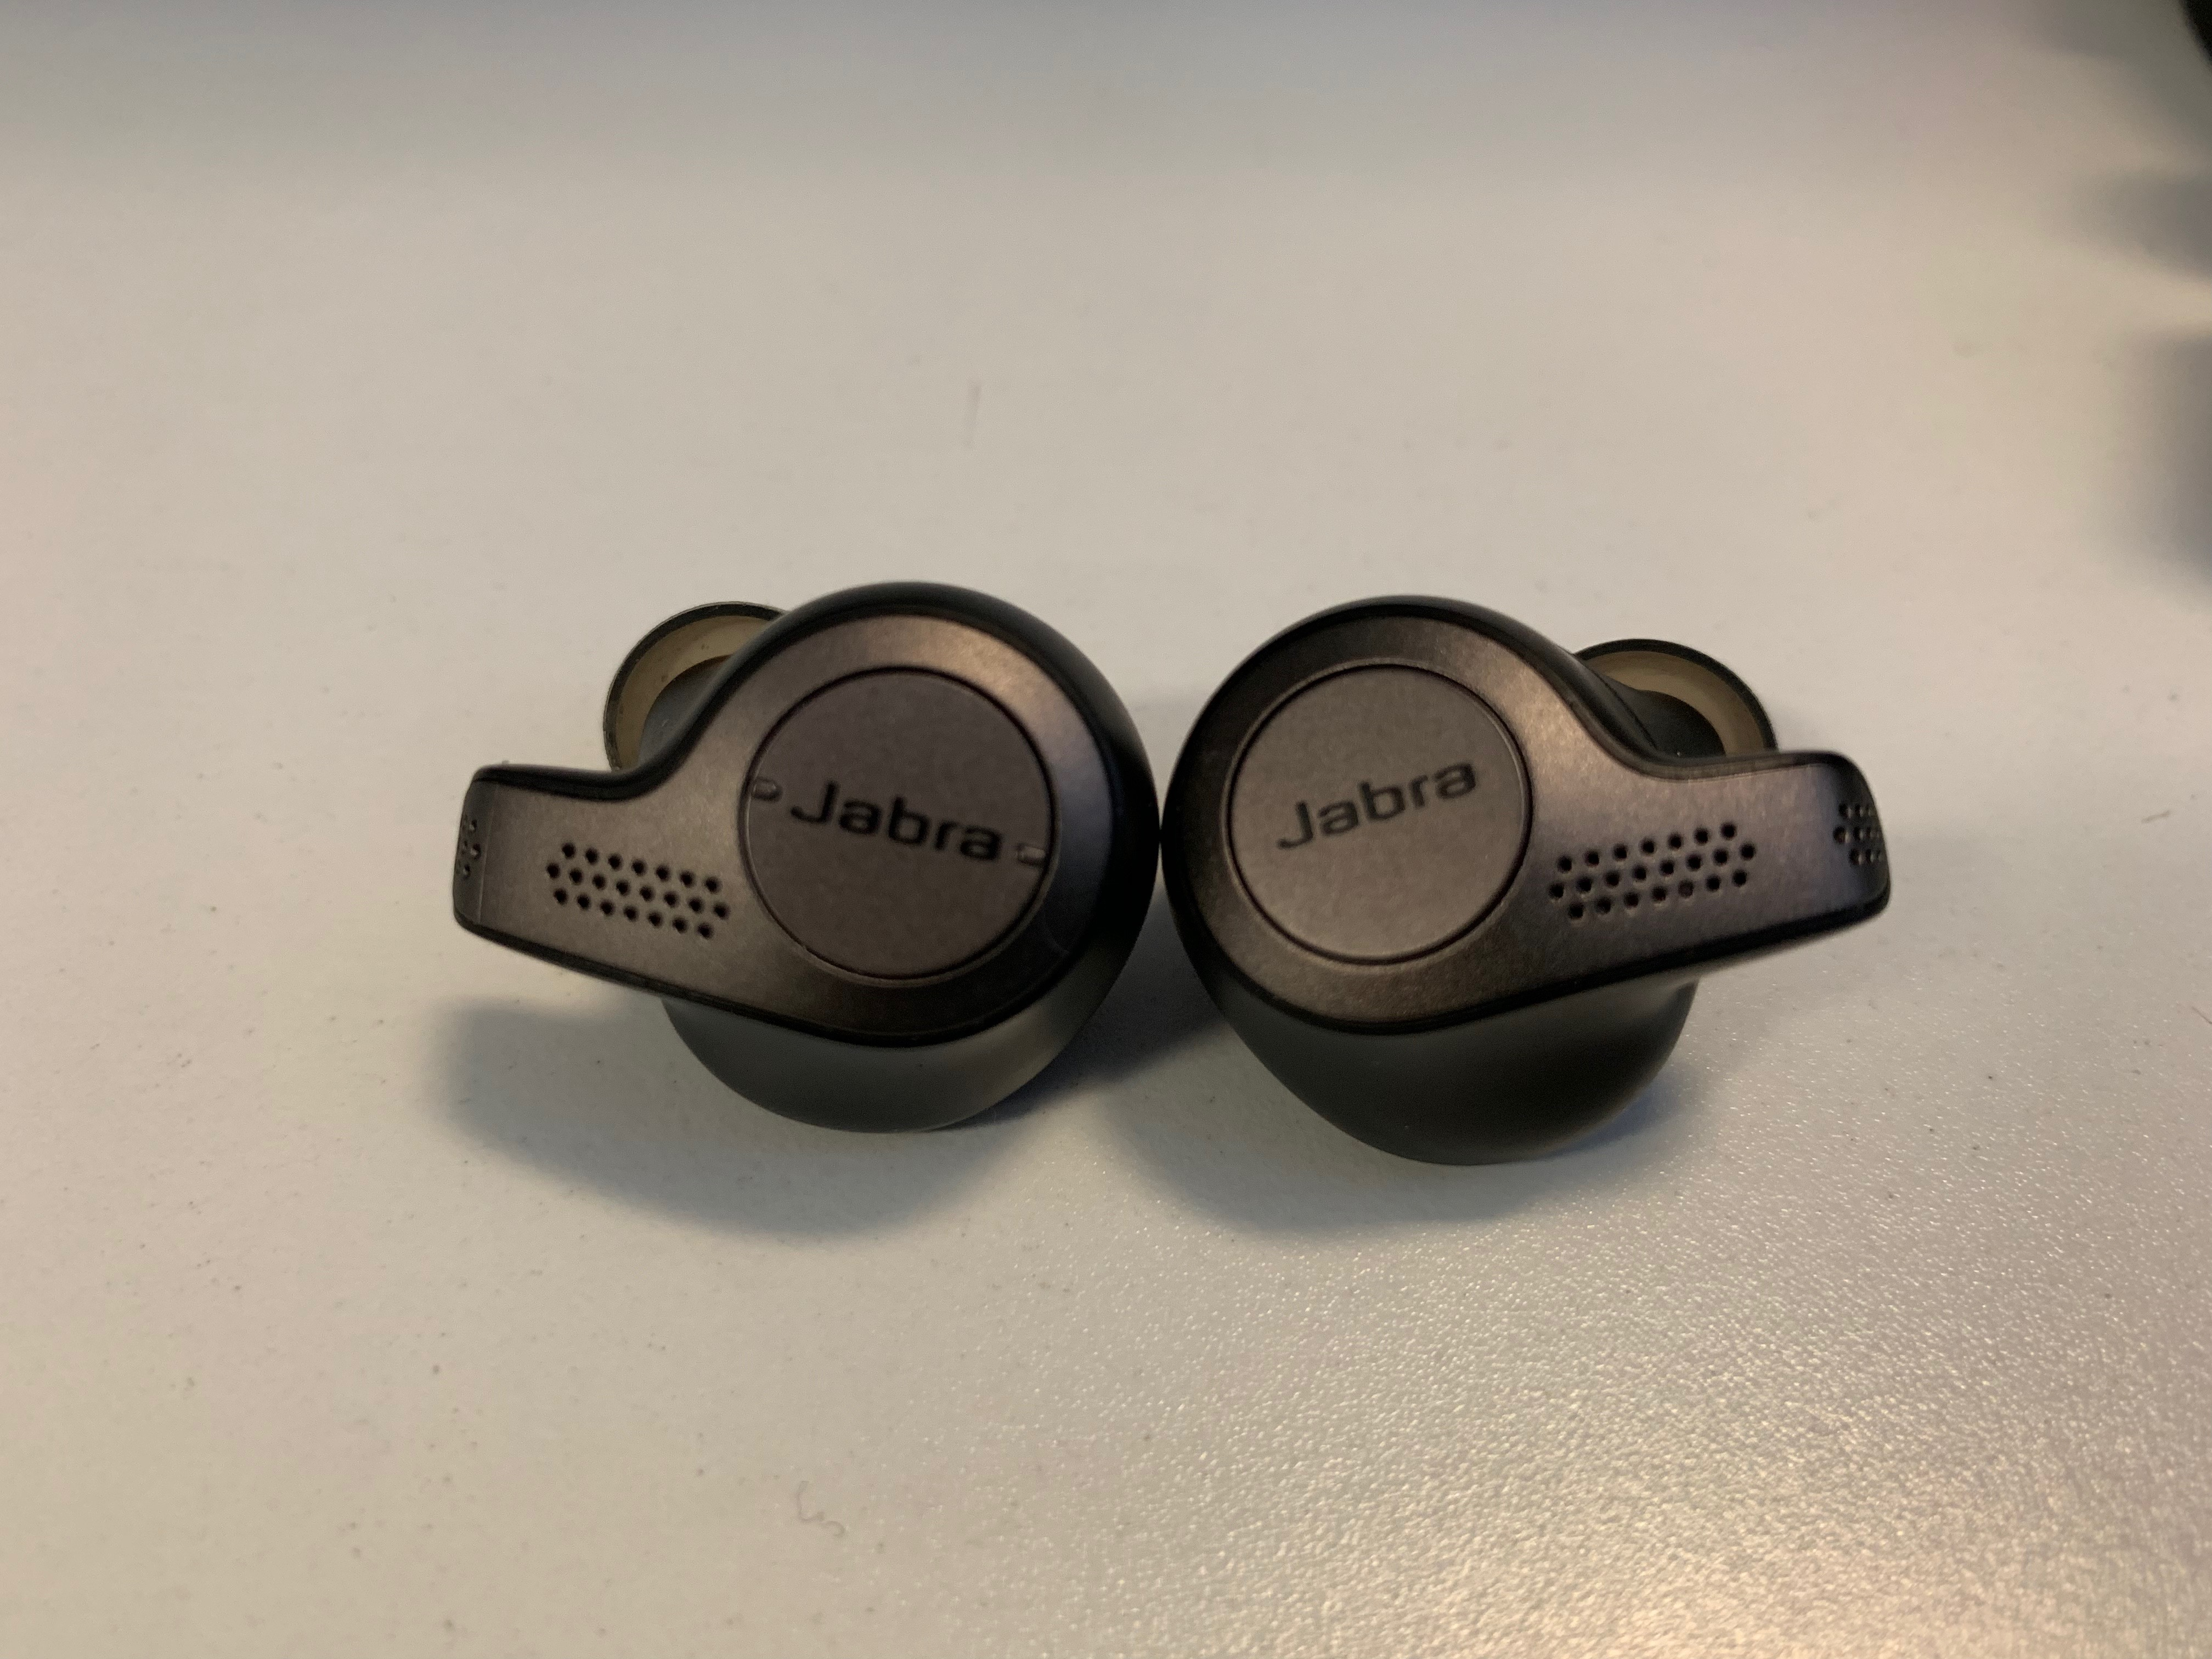 Jabra S Evolve 65t Are A Bold Alternative To Apple S Airpods